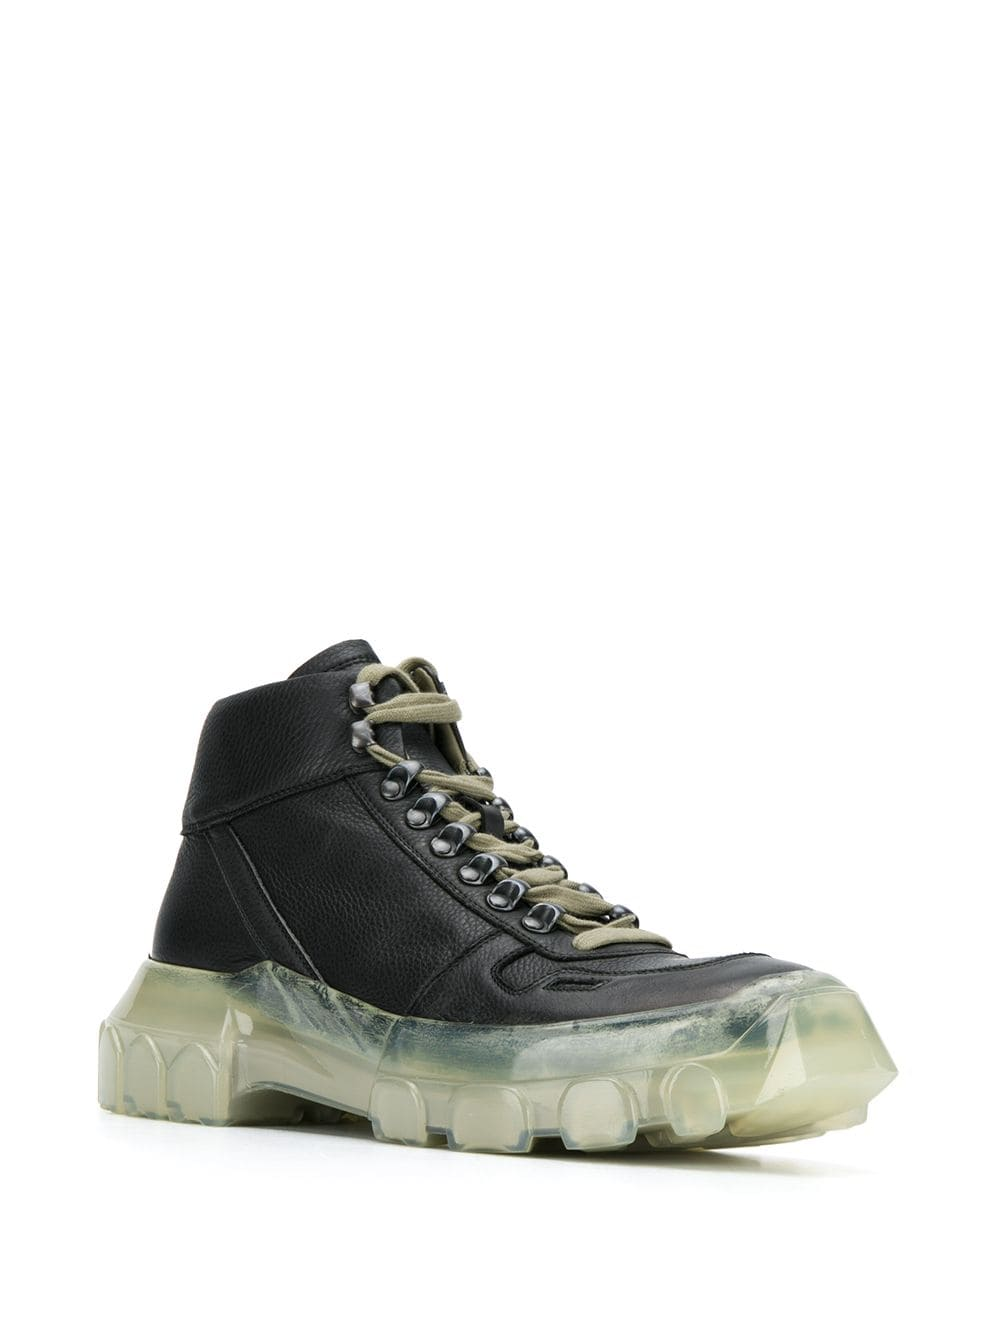 Rainbow RICK OWENS Larry Tractor Sneakers